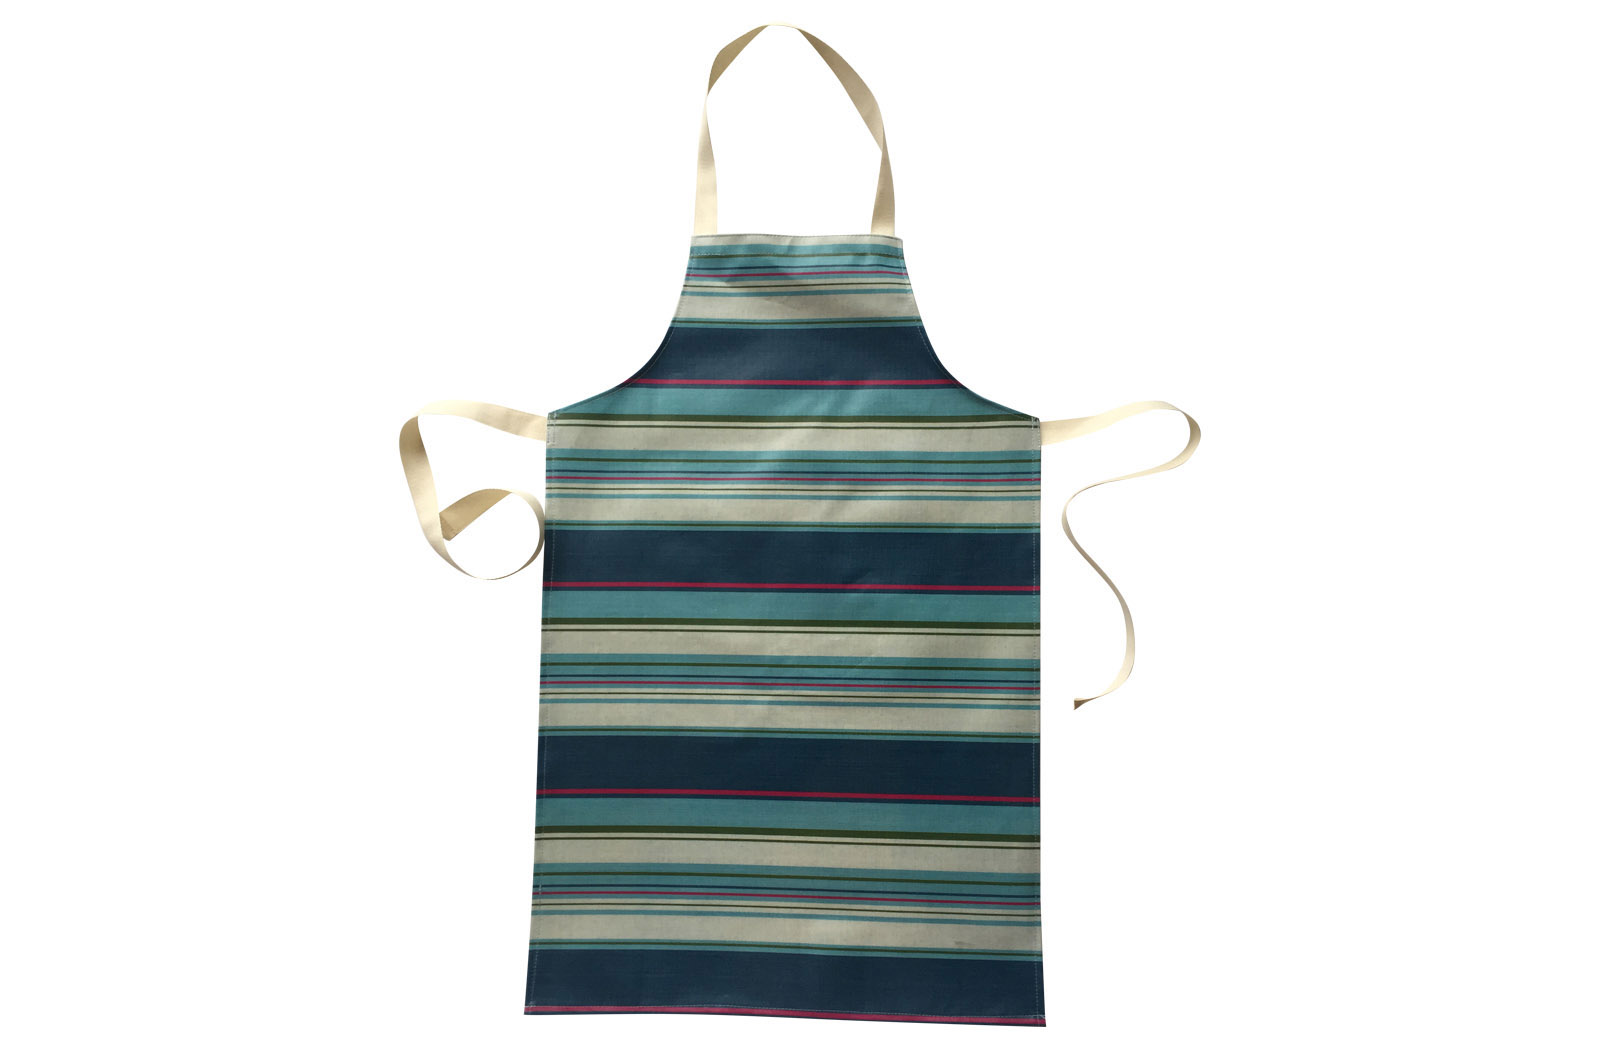 Petrol Blue Striped PVC Kids Aprons | Oilcloth Aprons for Children Petrol Blue  Pale Blue  Cream  Stripes